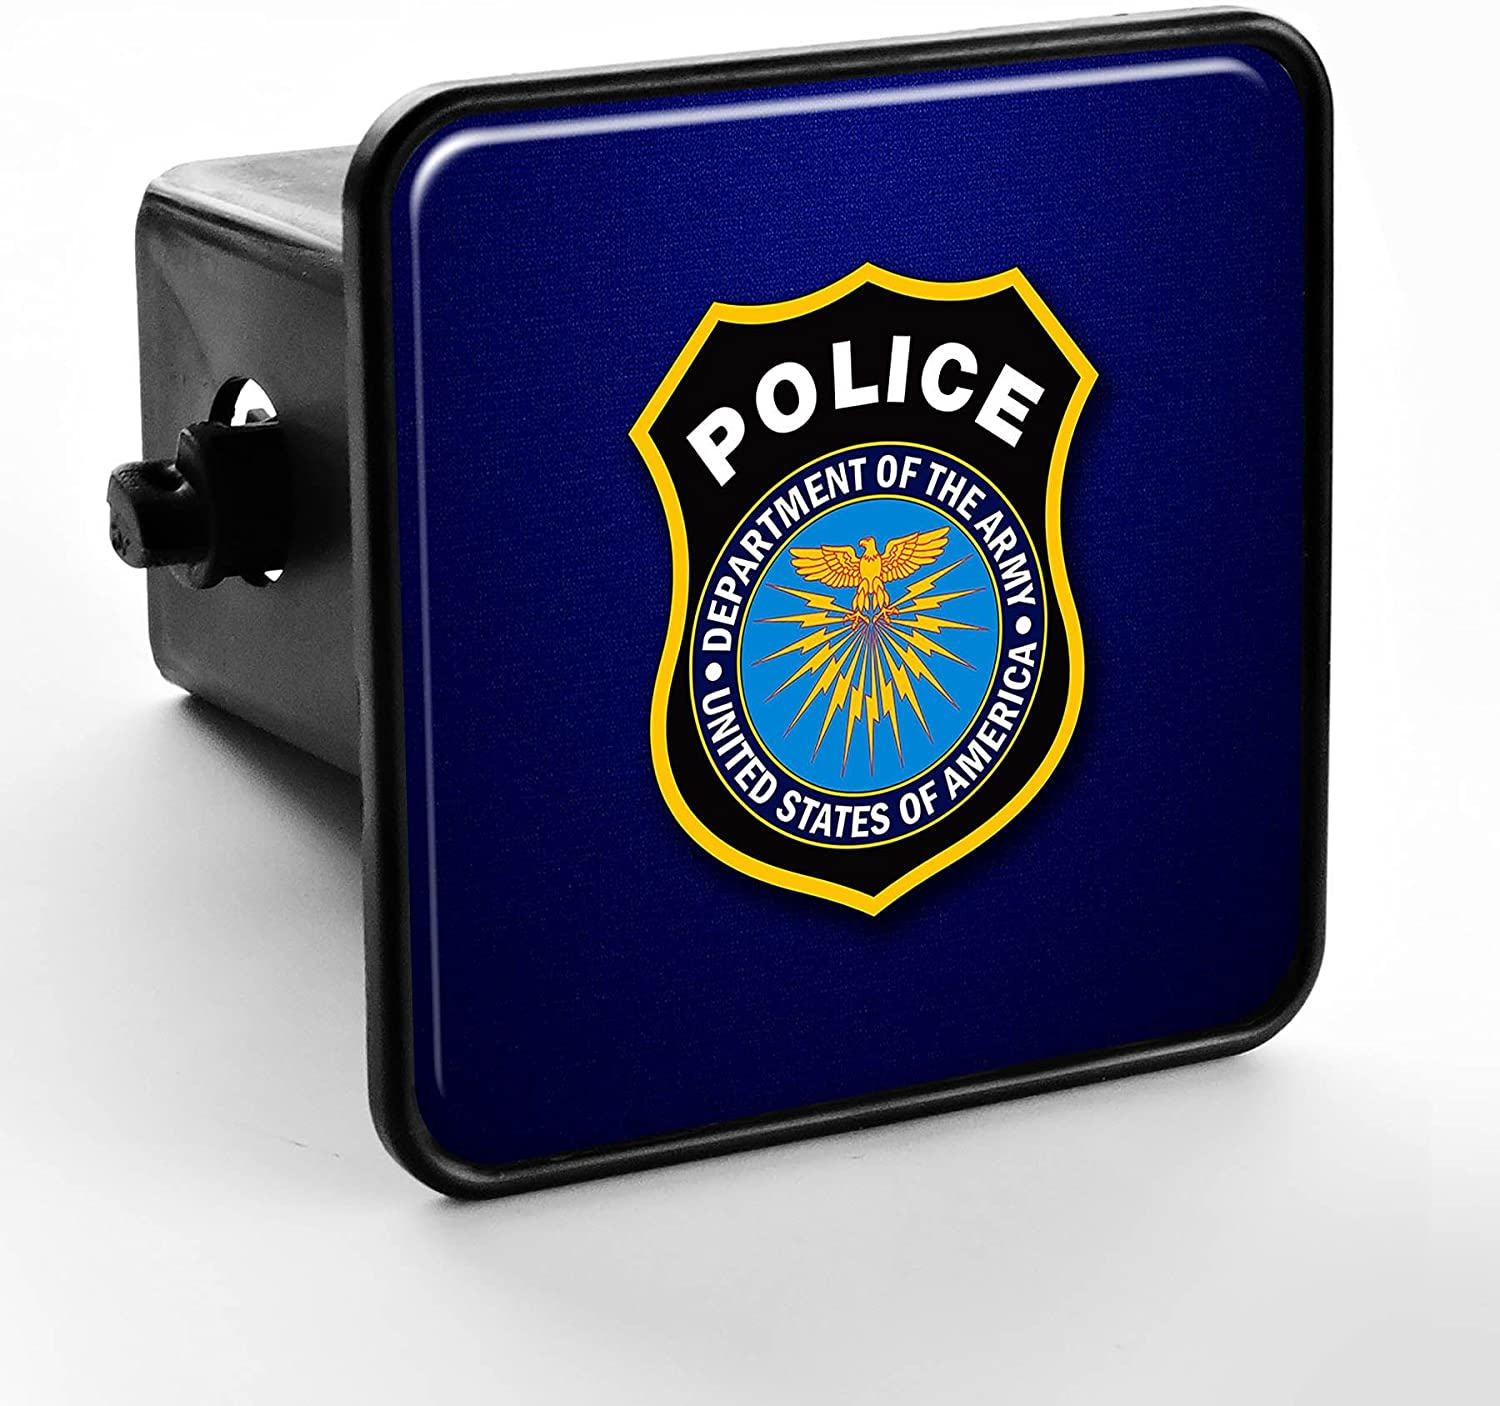 ExpressItBest Trailer Hitch Cover - US Department of The Army Police (Badge)